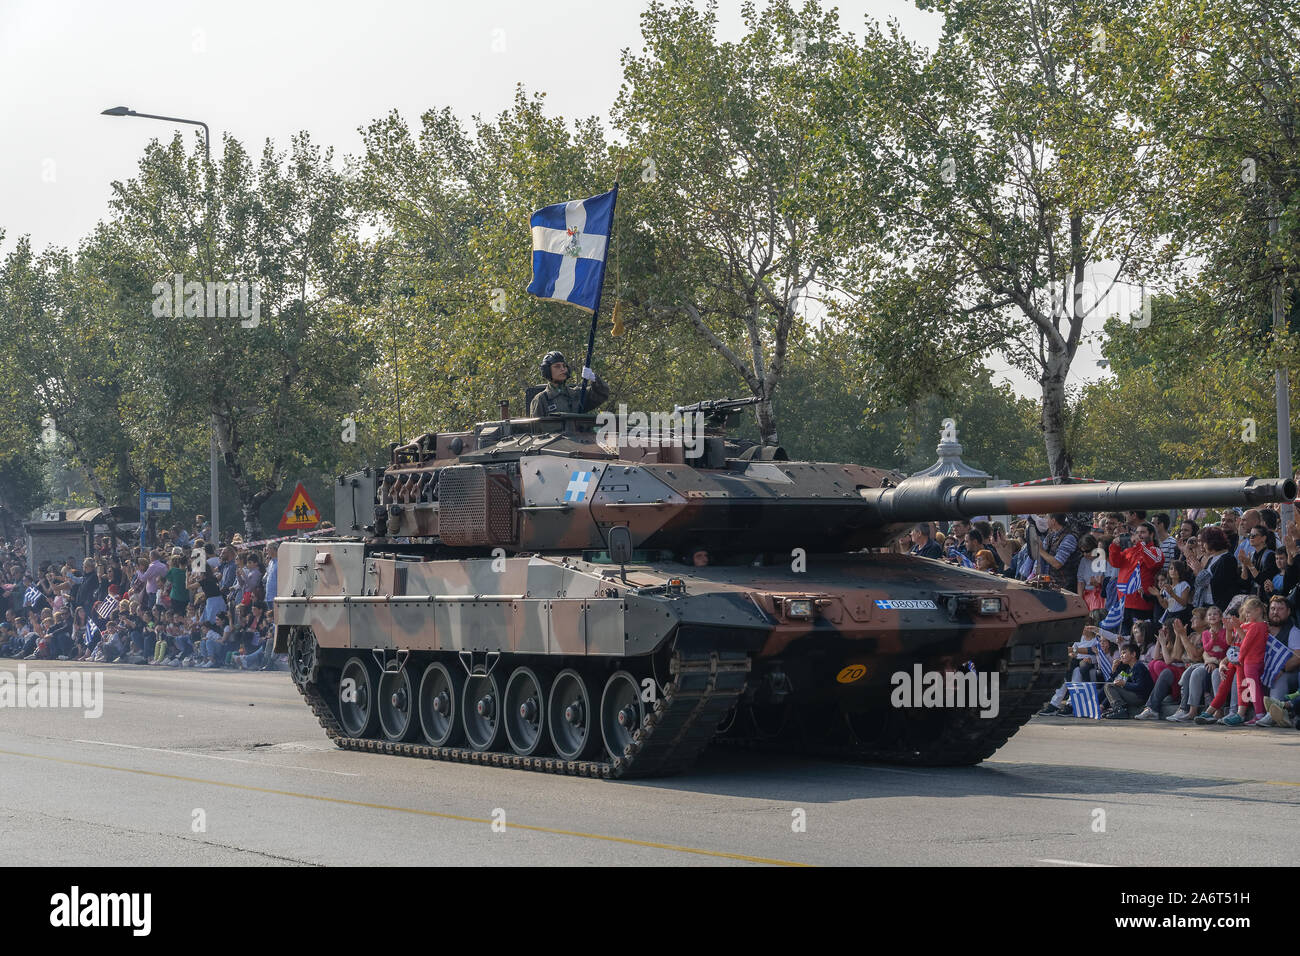 Thessaloniki Oxi Day Greek Army Tanks Parade March During National Day Celebration Military Parade For Greek No Against Italian 1940 Ultimatum Stock Photo Alamy